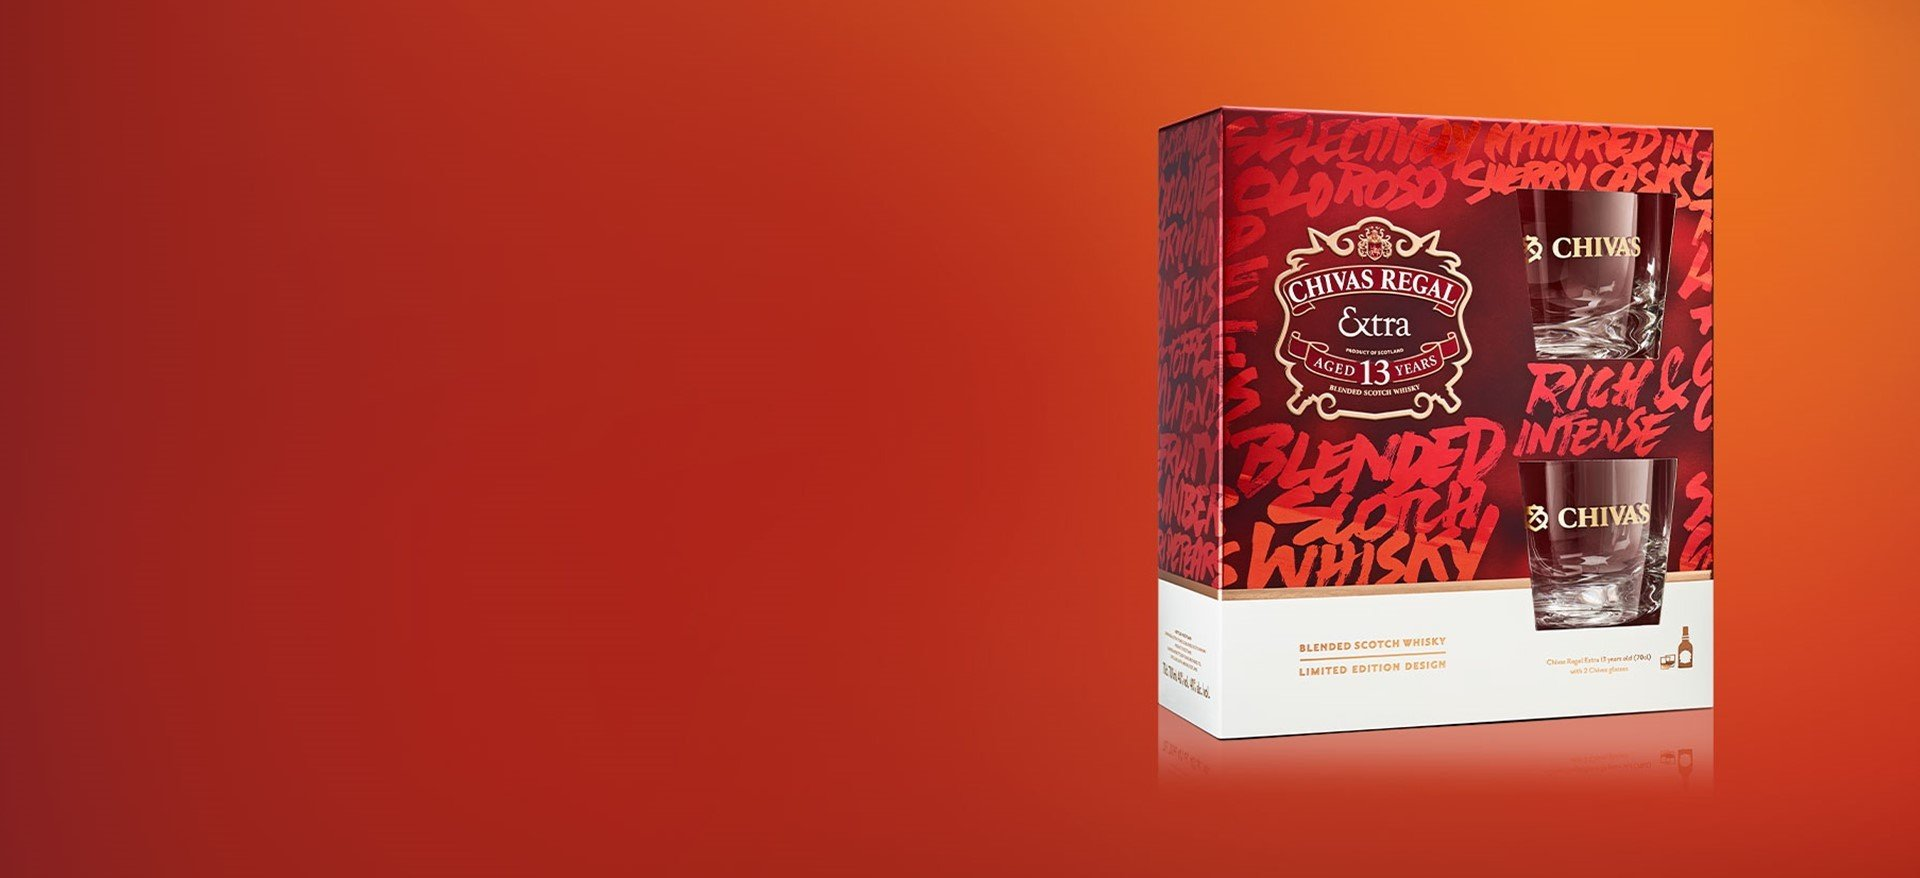 Chivas Regal Limited Edition Gift